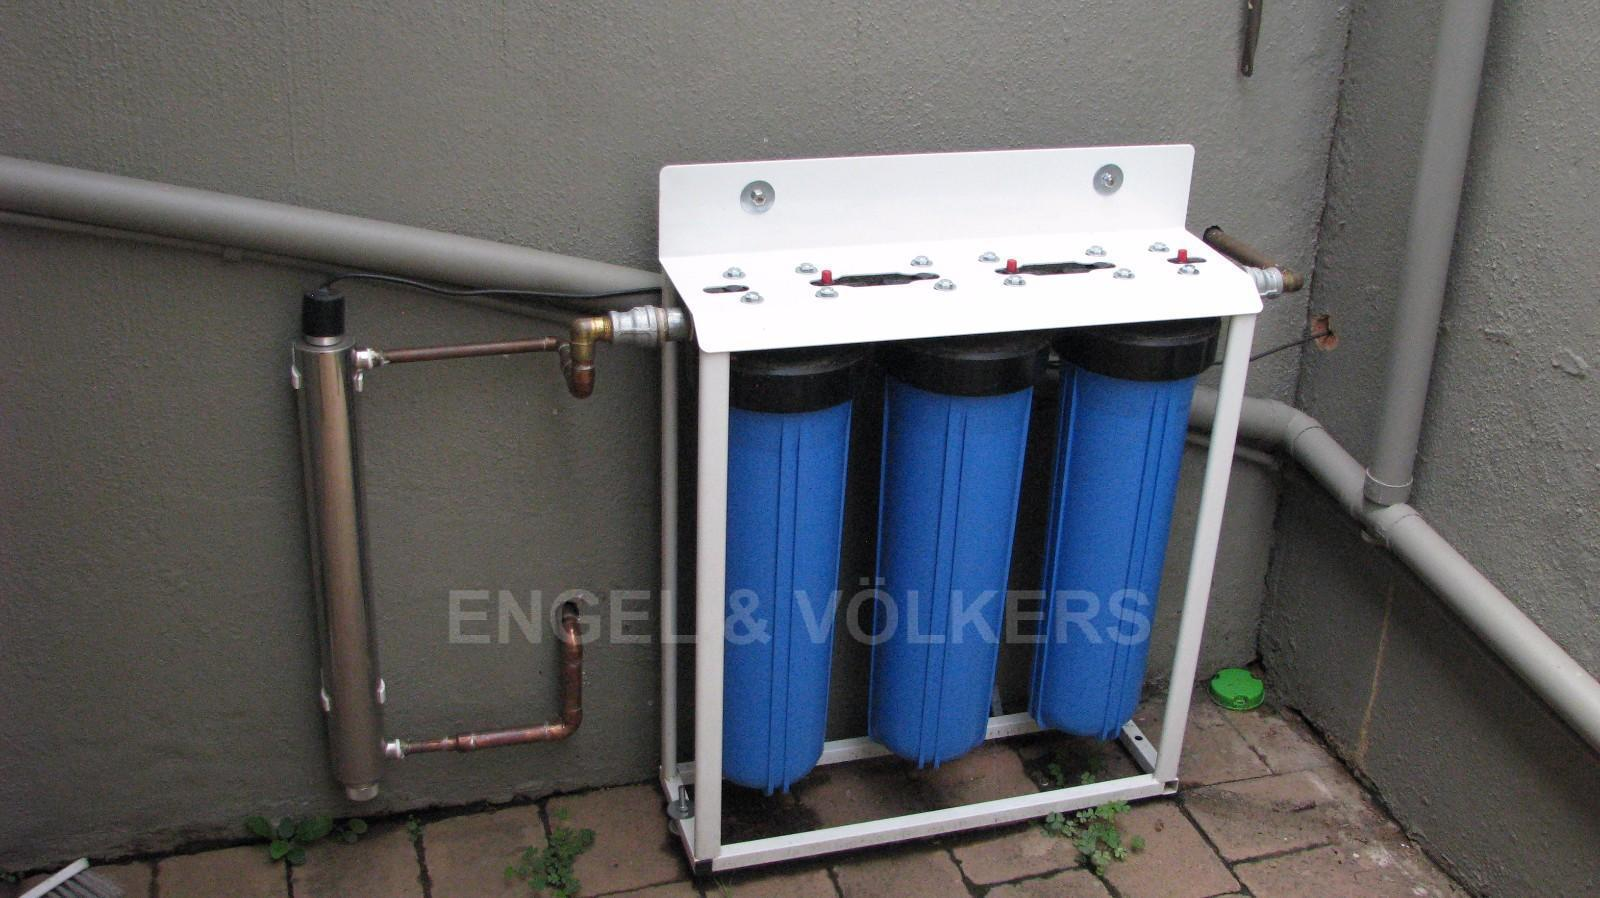 House in Melodie - Water filtration system that runs through the whole Property